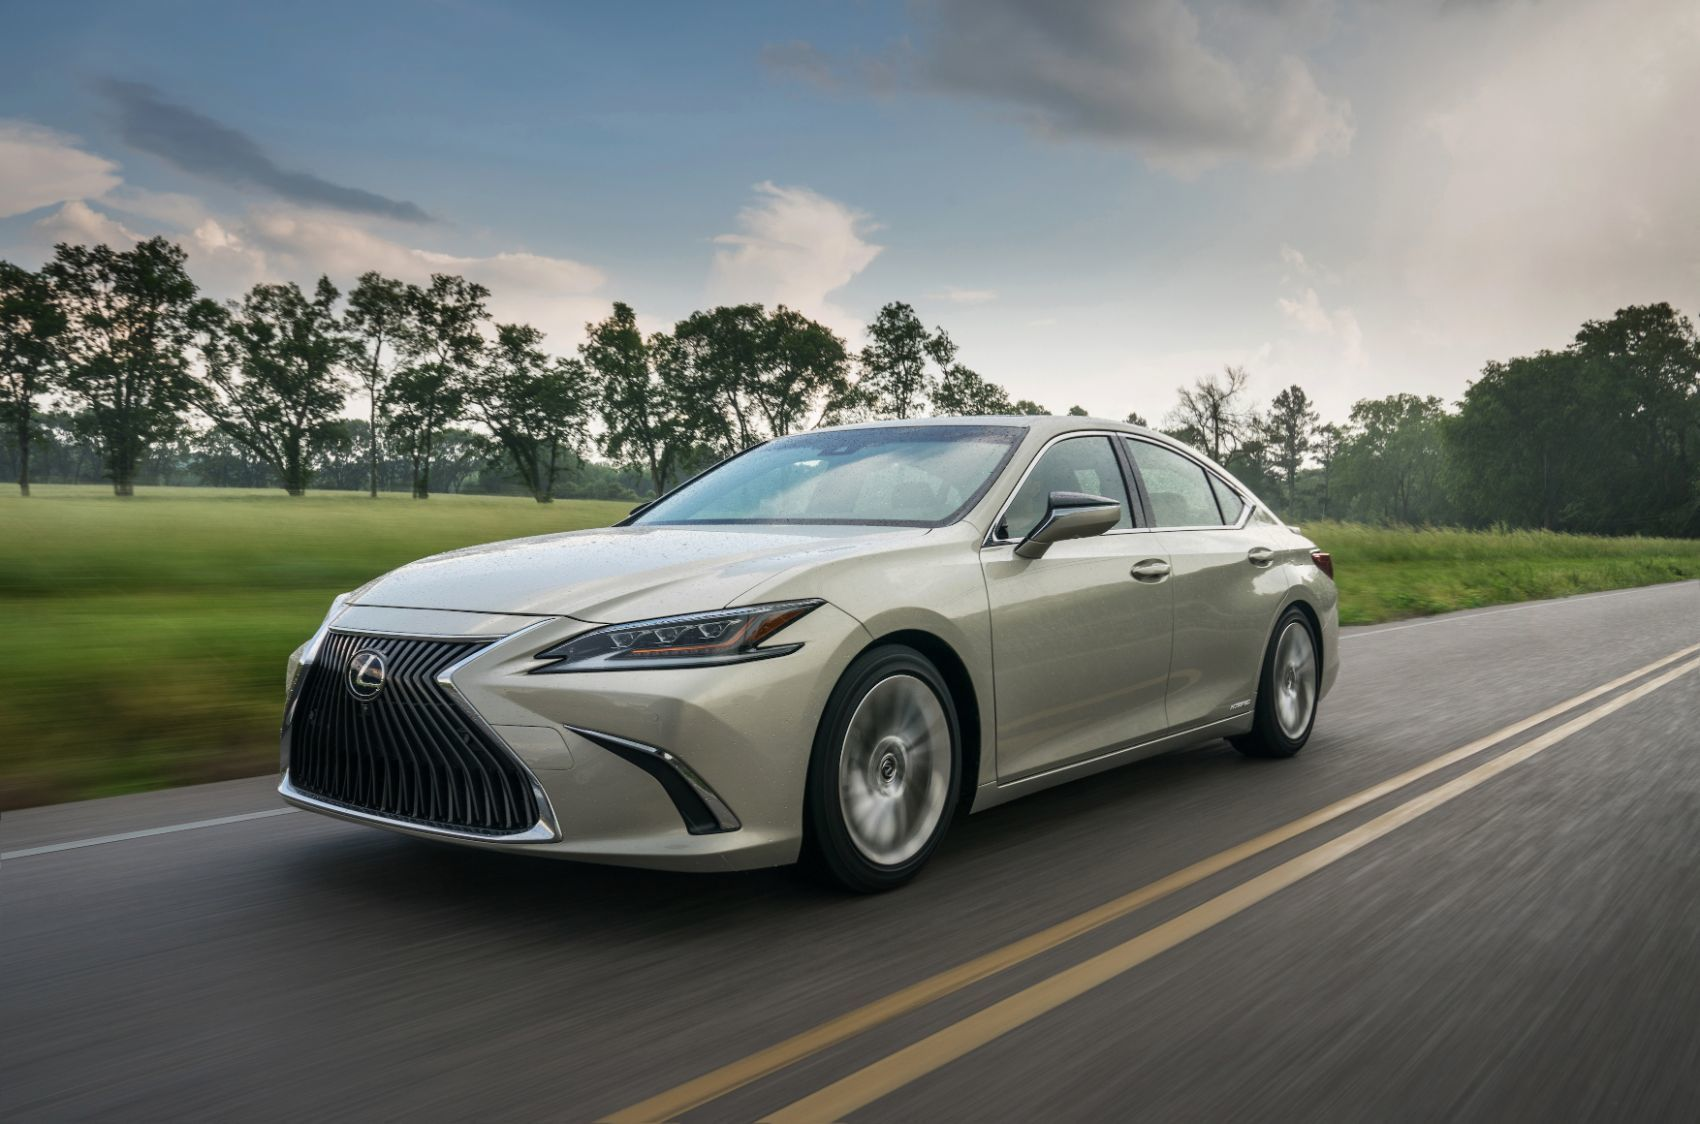 2020 Lexus Es 300h Review Practical Luxurious But Should You Buy It In 2020 Lexus Es Lexus Toyota Alphard